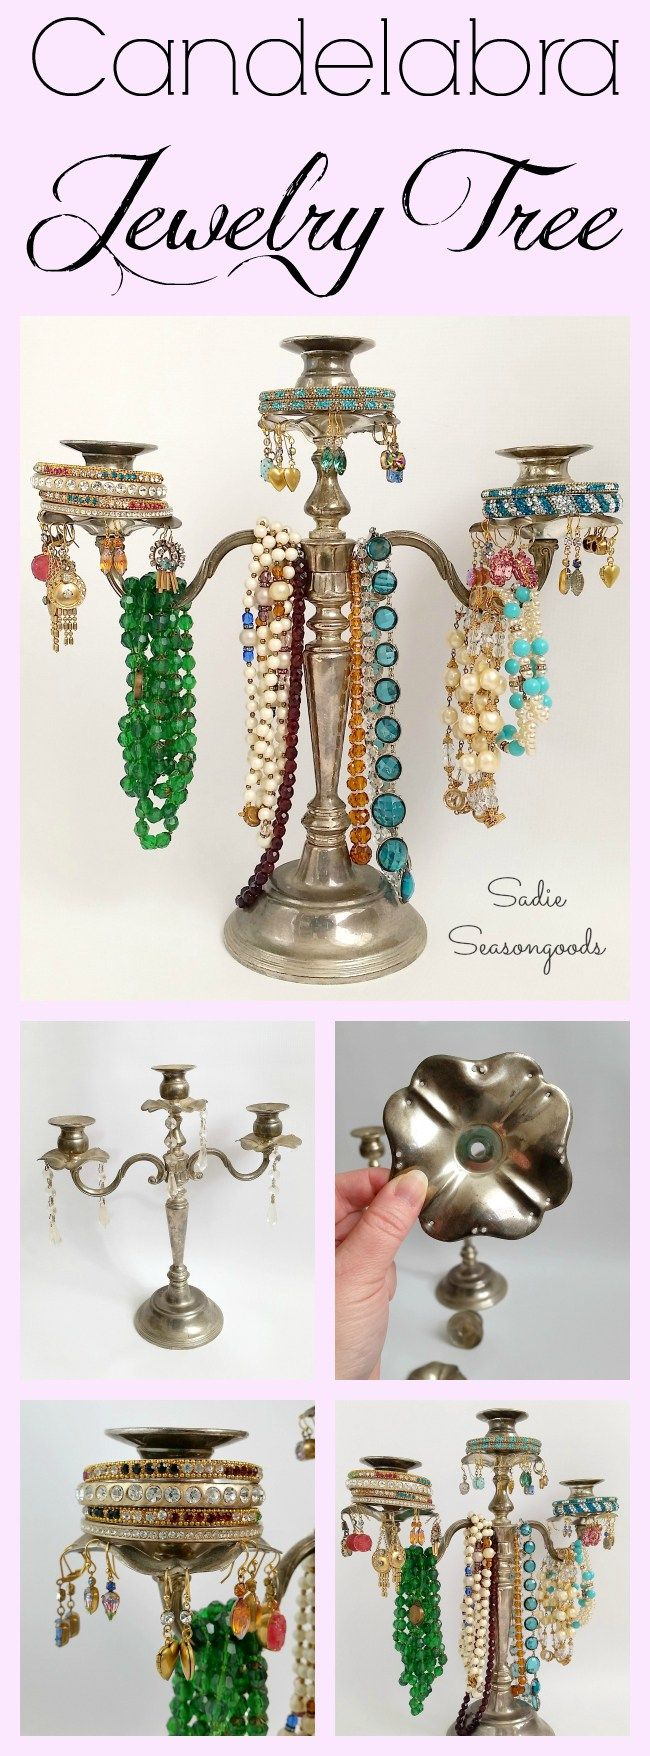 A vintage silver candelabra from the thrift store is *easily* repurposed as a gorgeous, elegant, and sturdy jewelry tree for all of your prettiest accessories! Arms to hold necklaces, candlesticks for earrings to dangle from, and platforms for nesting bangles- perfectly stunning and a fun thrift store upcycle DIY. #SadieSeasongoods  www.sadieseasongoods.com